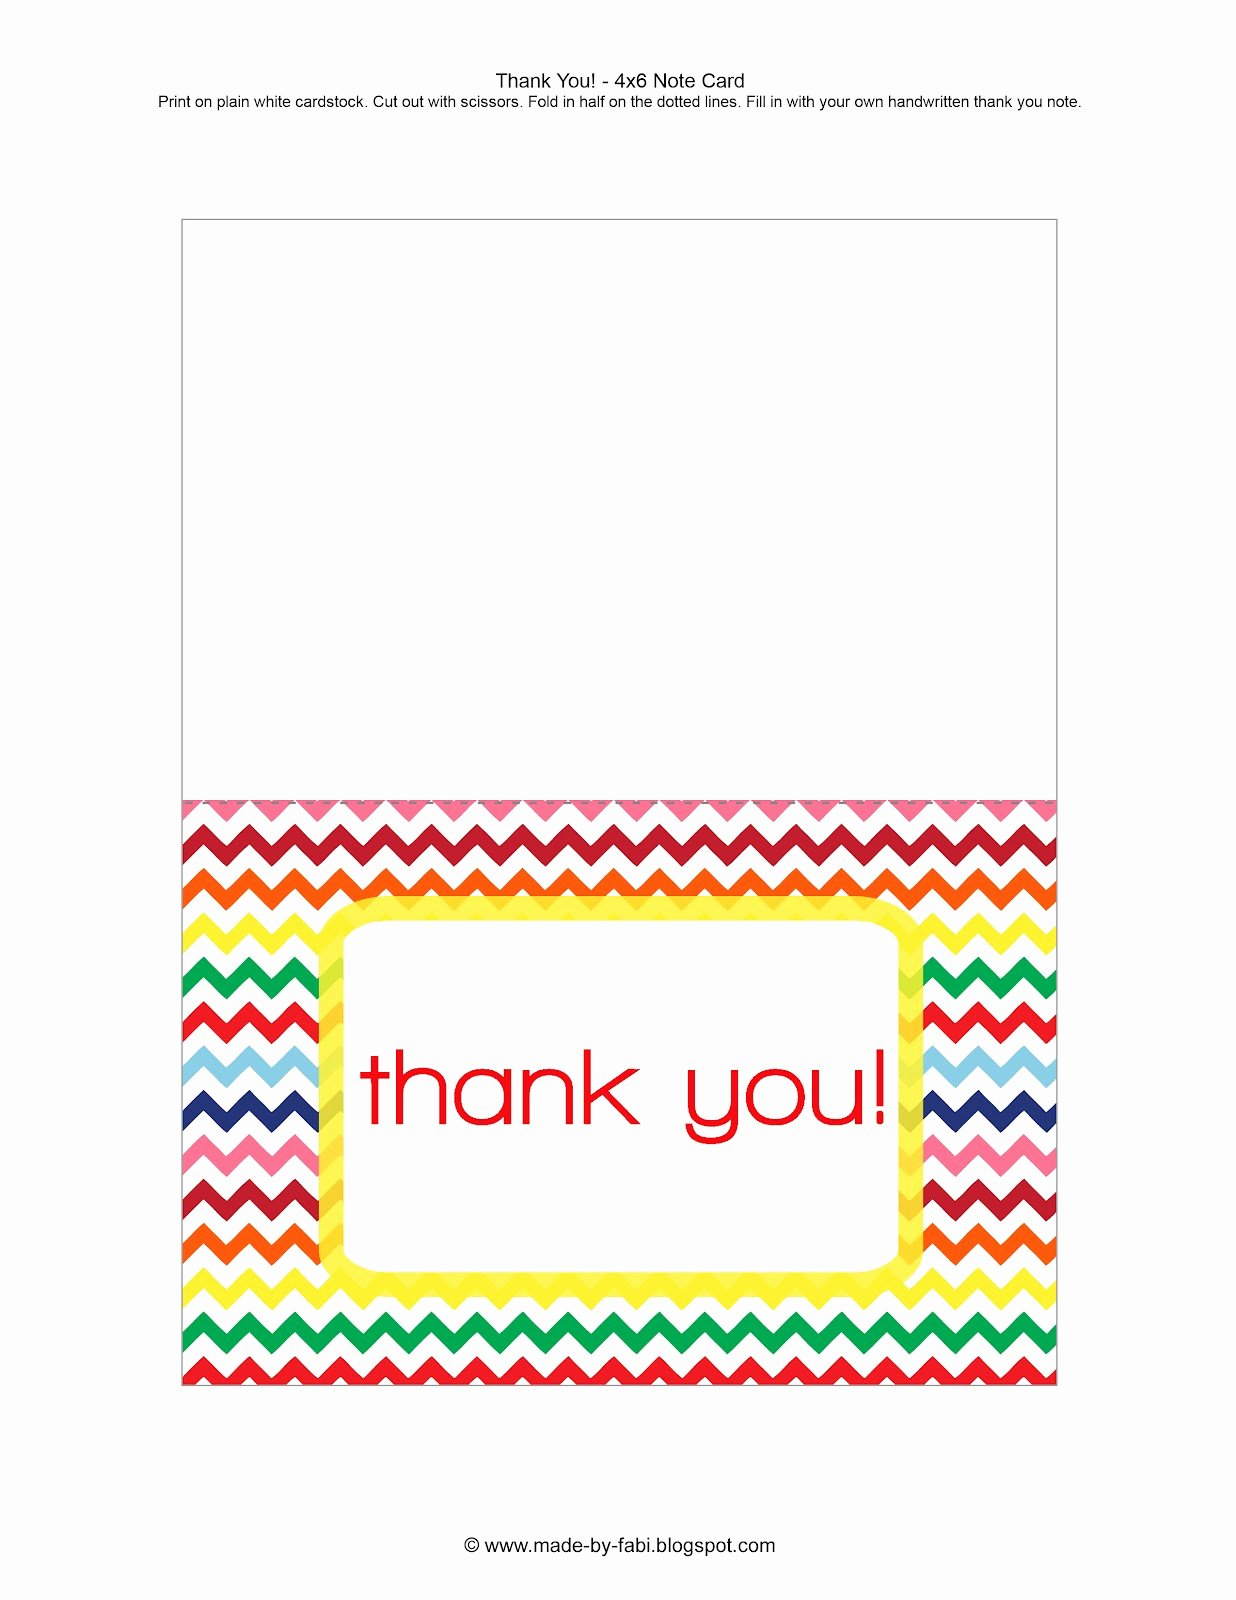 Free Thank You Cards Templates Awesome Thank You Card Free Printable